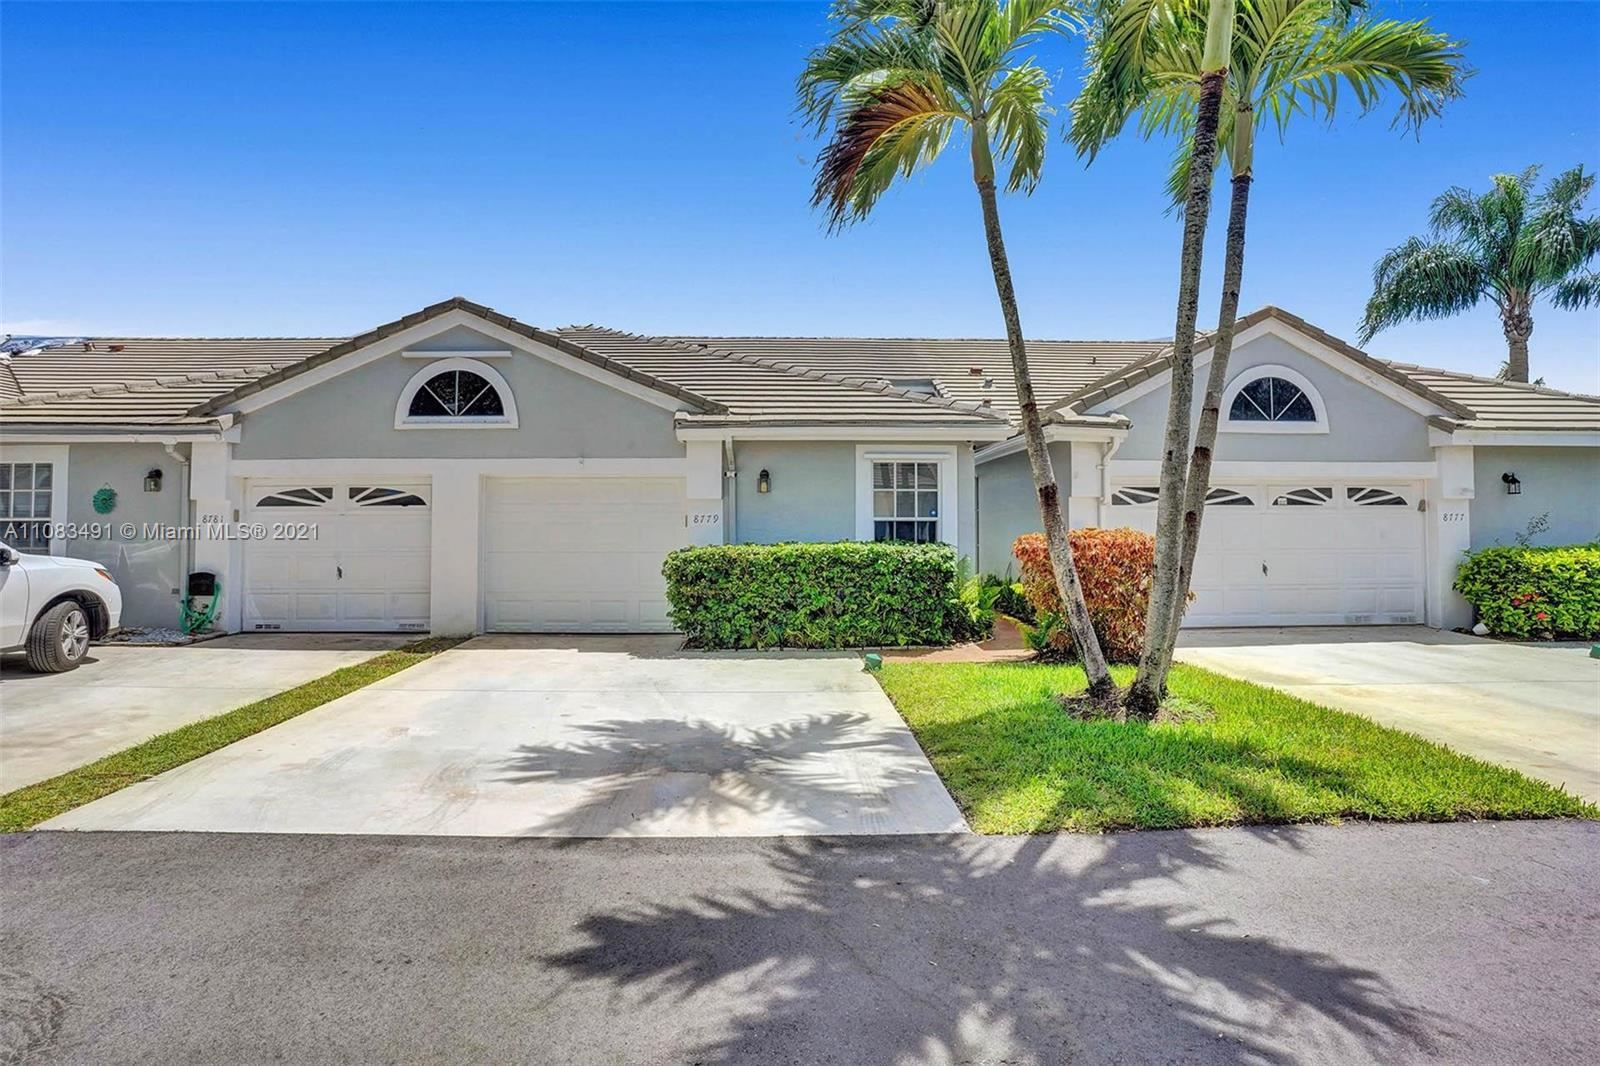 8779 Forest Hills Blvd #40, Coral Springs, FL 33065 - #: A11083491